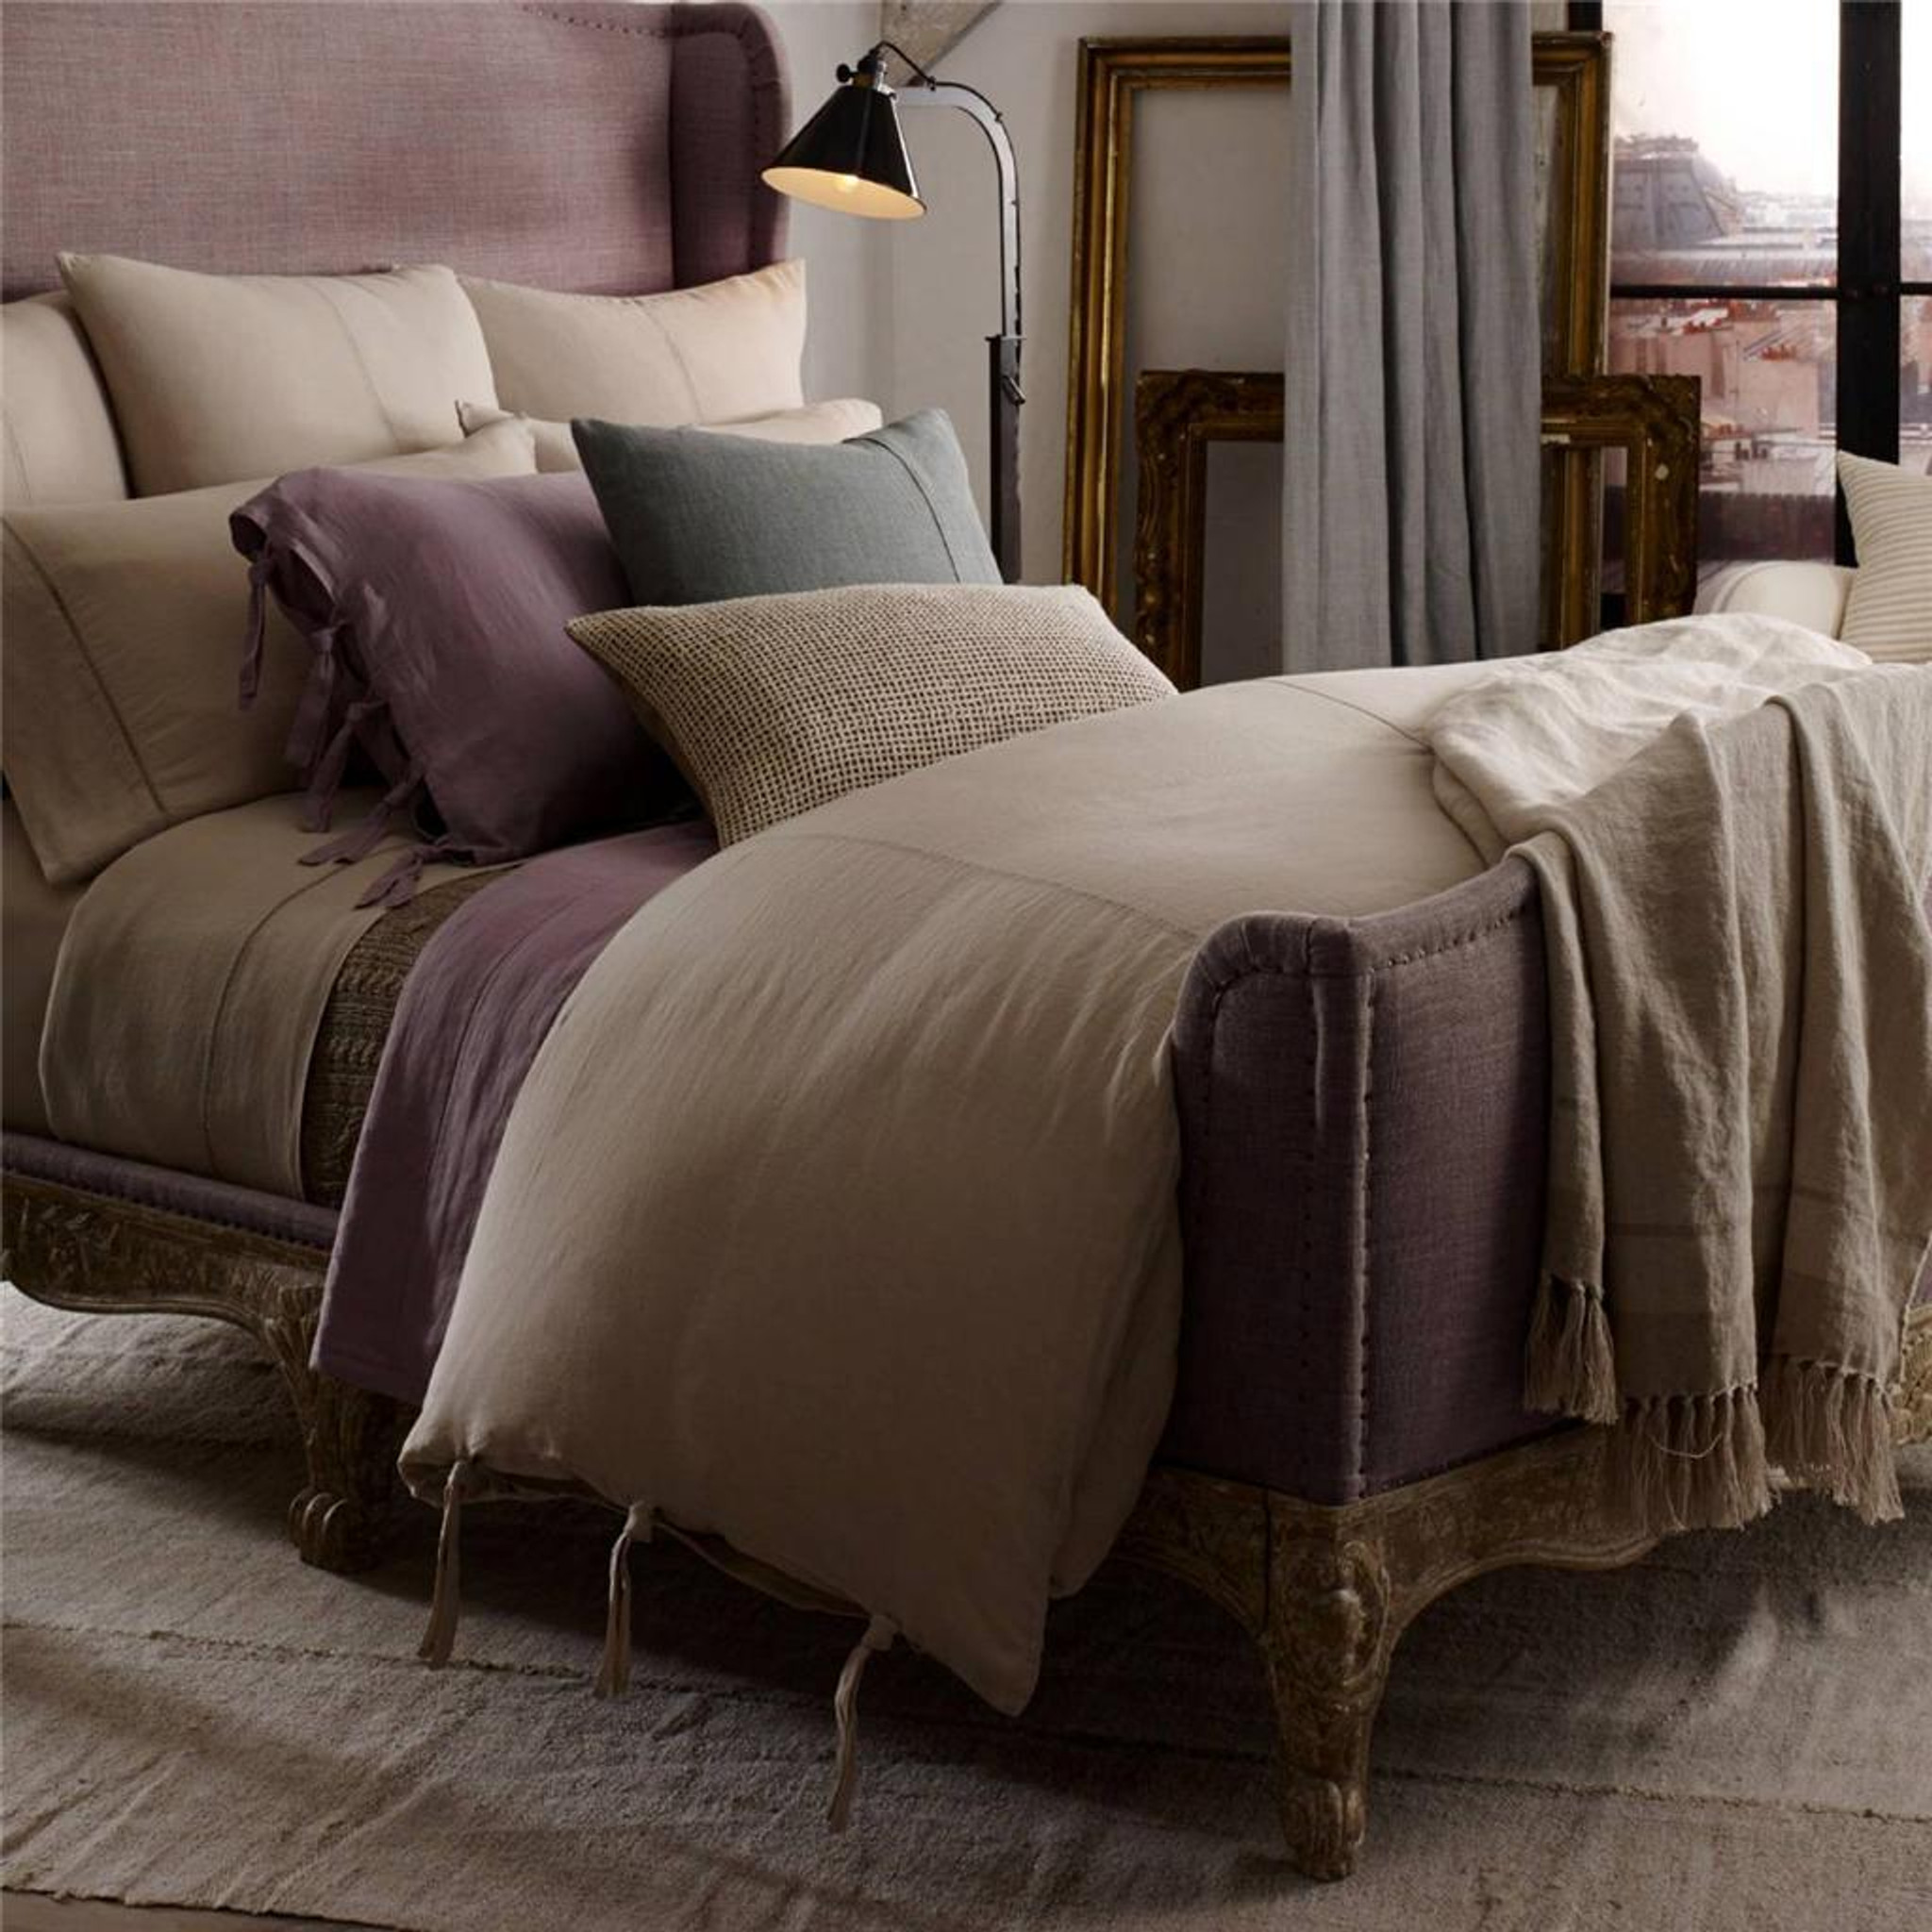 Ralph Lauren Bohemian Ile Saint Louis King Duvet Cover Set New